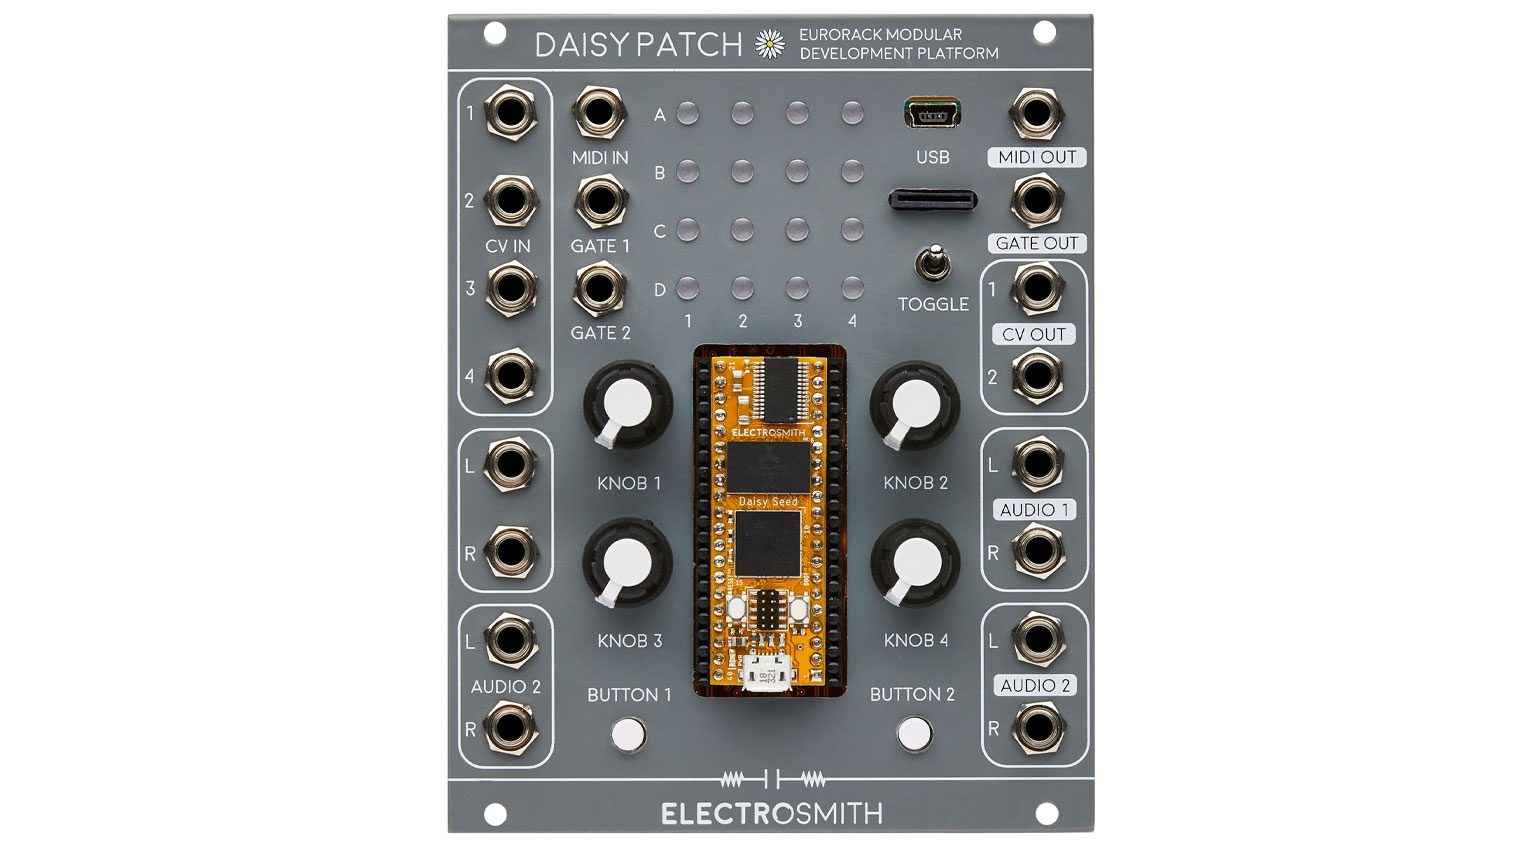 Electrosmith Daisy Patch